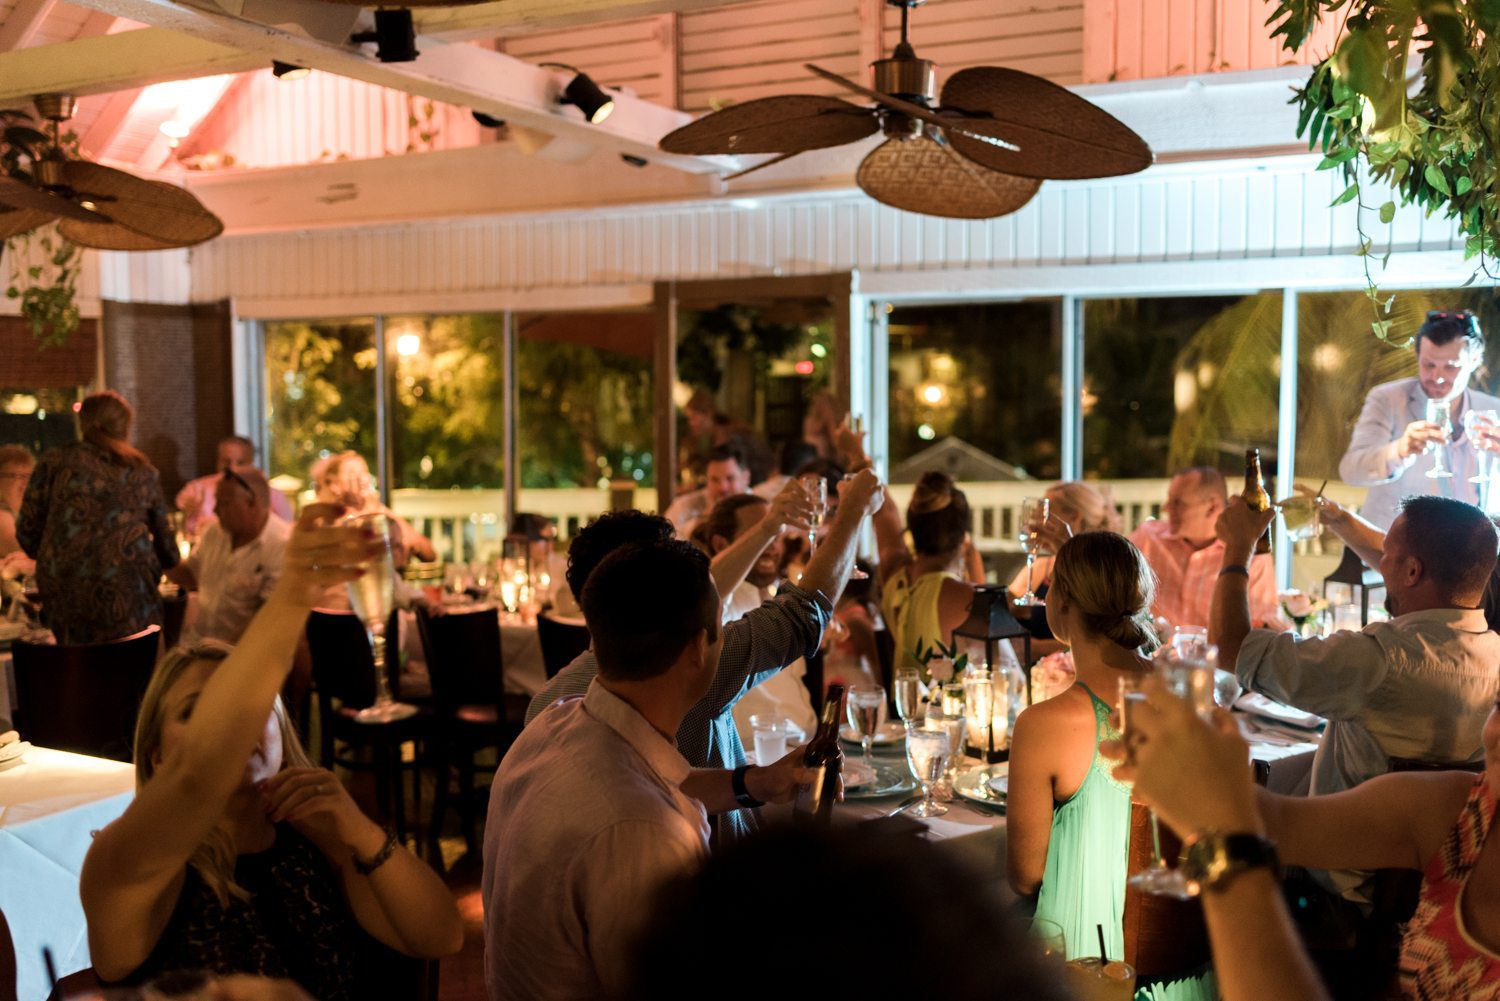 Erin Colin Fort Zachary Taylor Rooftop Cafe Key West Wedding Photographer 60 - Erin & Colin   Key West Wedding Photographer   Fort Zachary Taylor